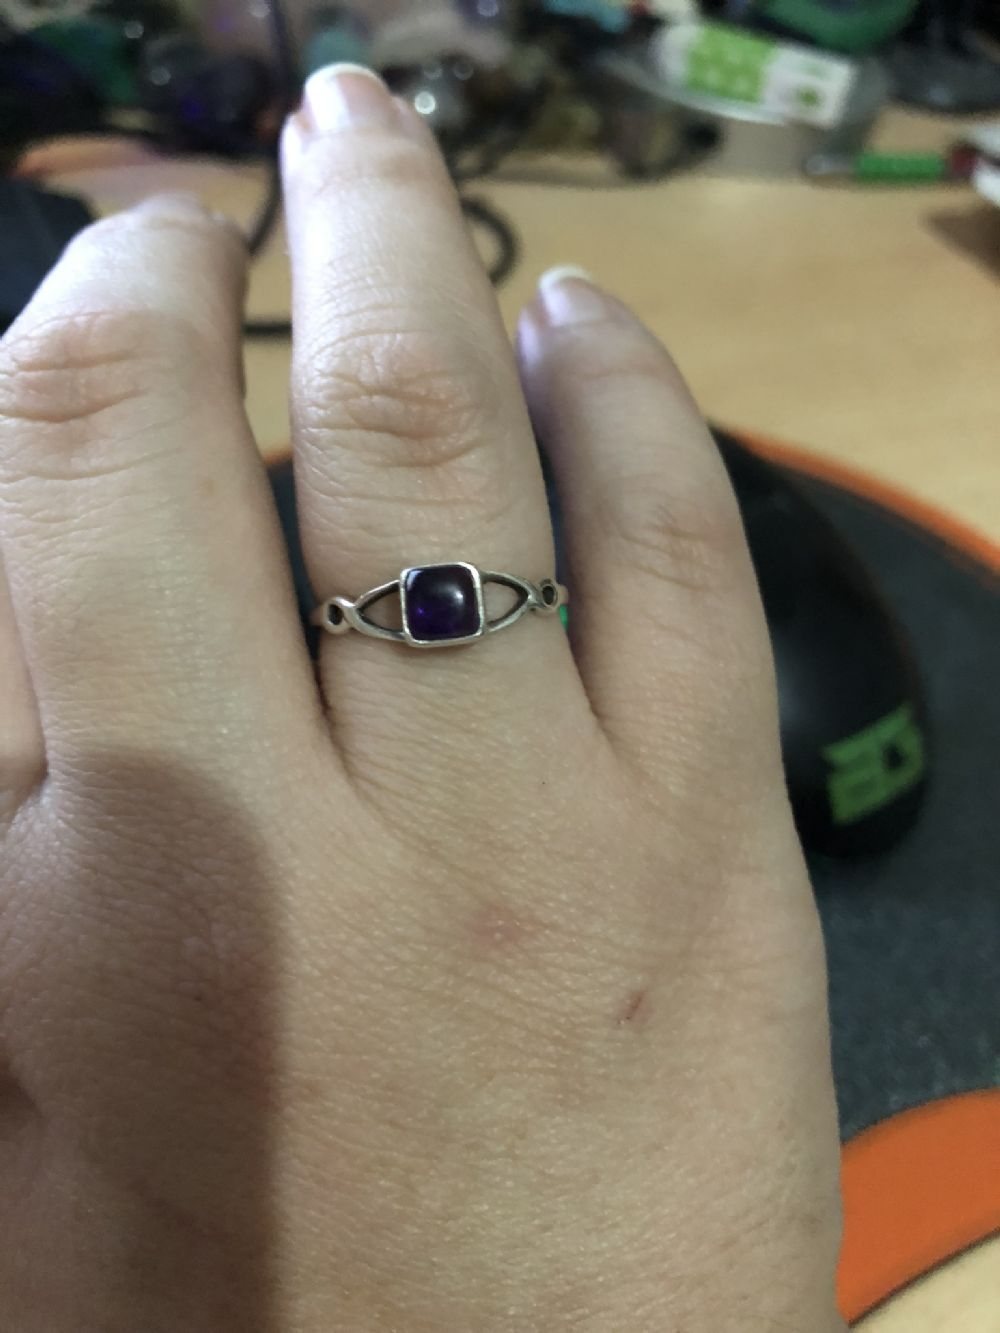 Size 8  Amethyst Silver Ring with Square Inlay -- Photo # 83116